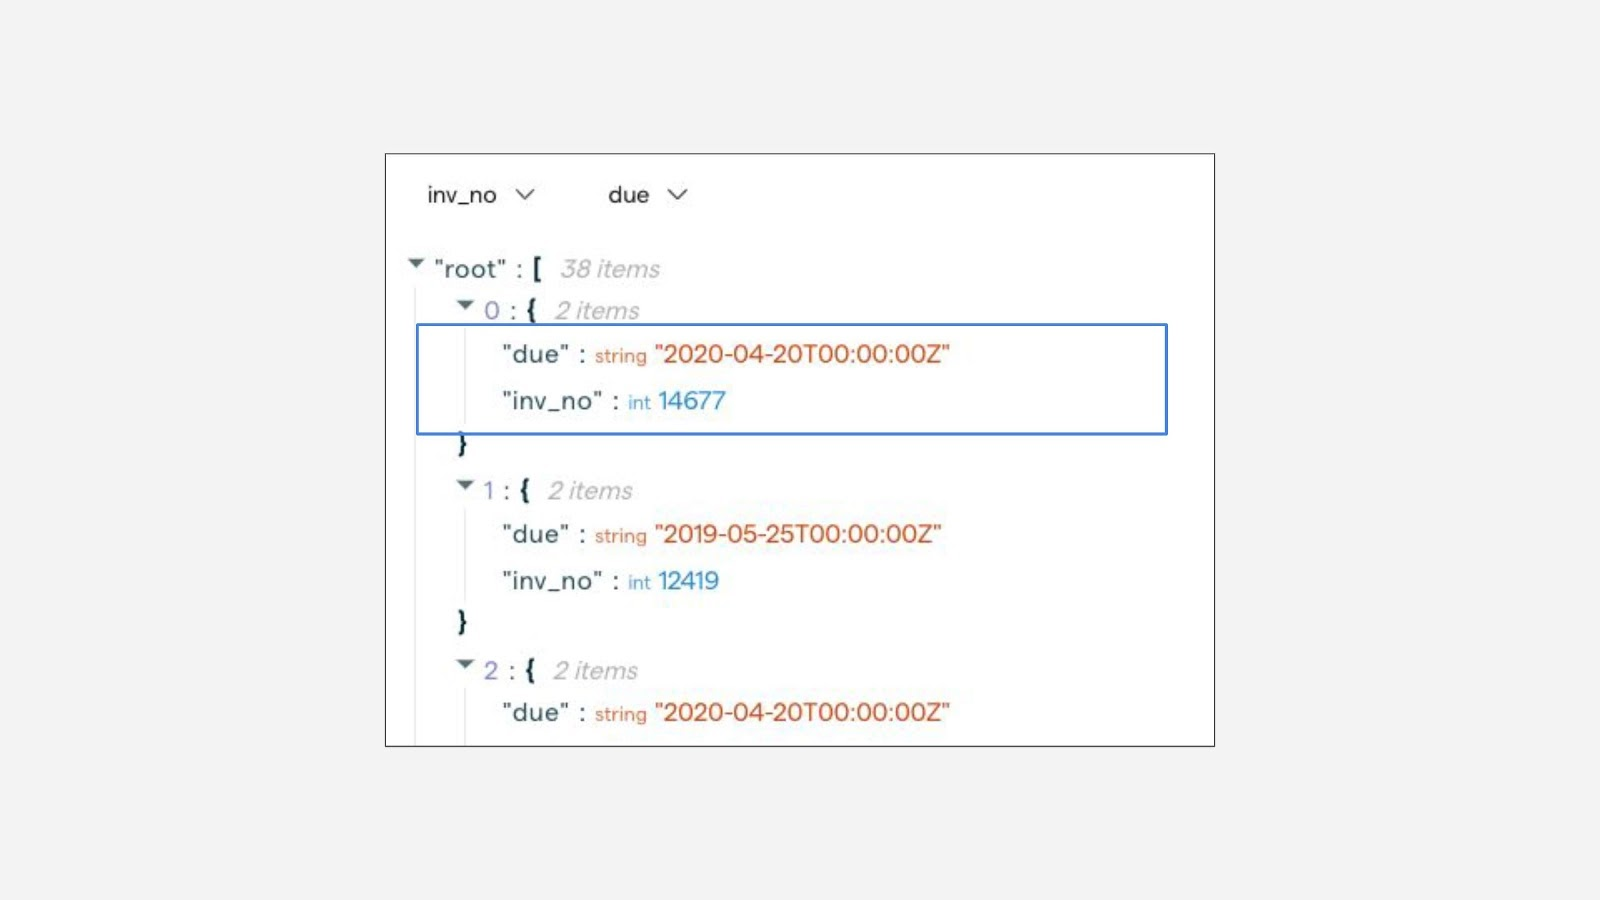 JSON result with aliased field names